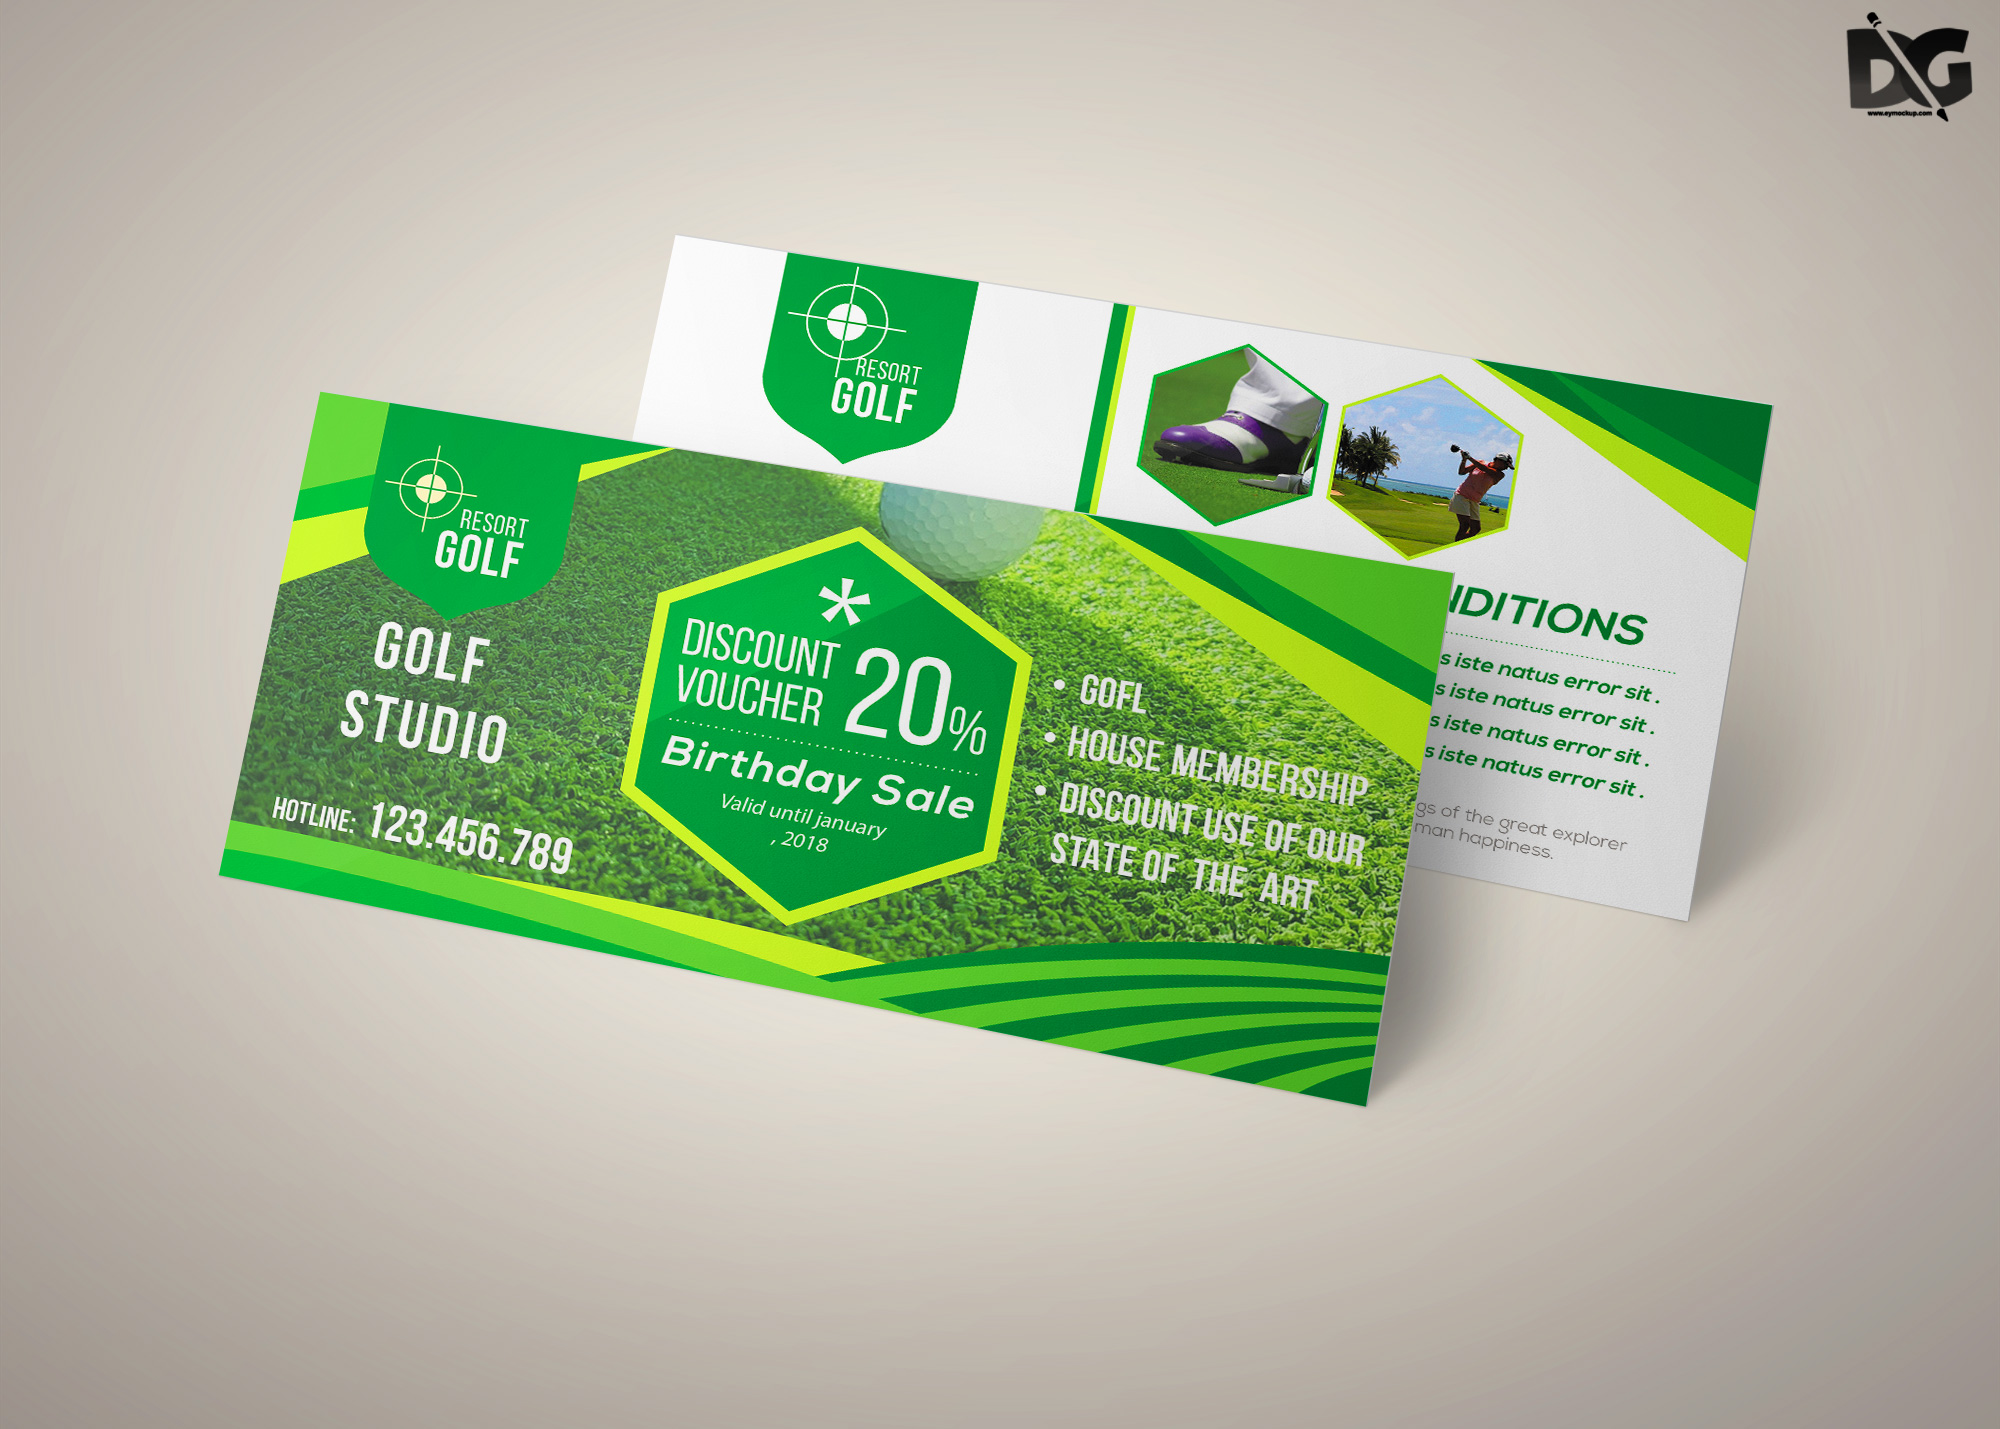 Free PSD Golf Studio Gift Card Template